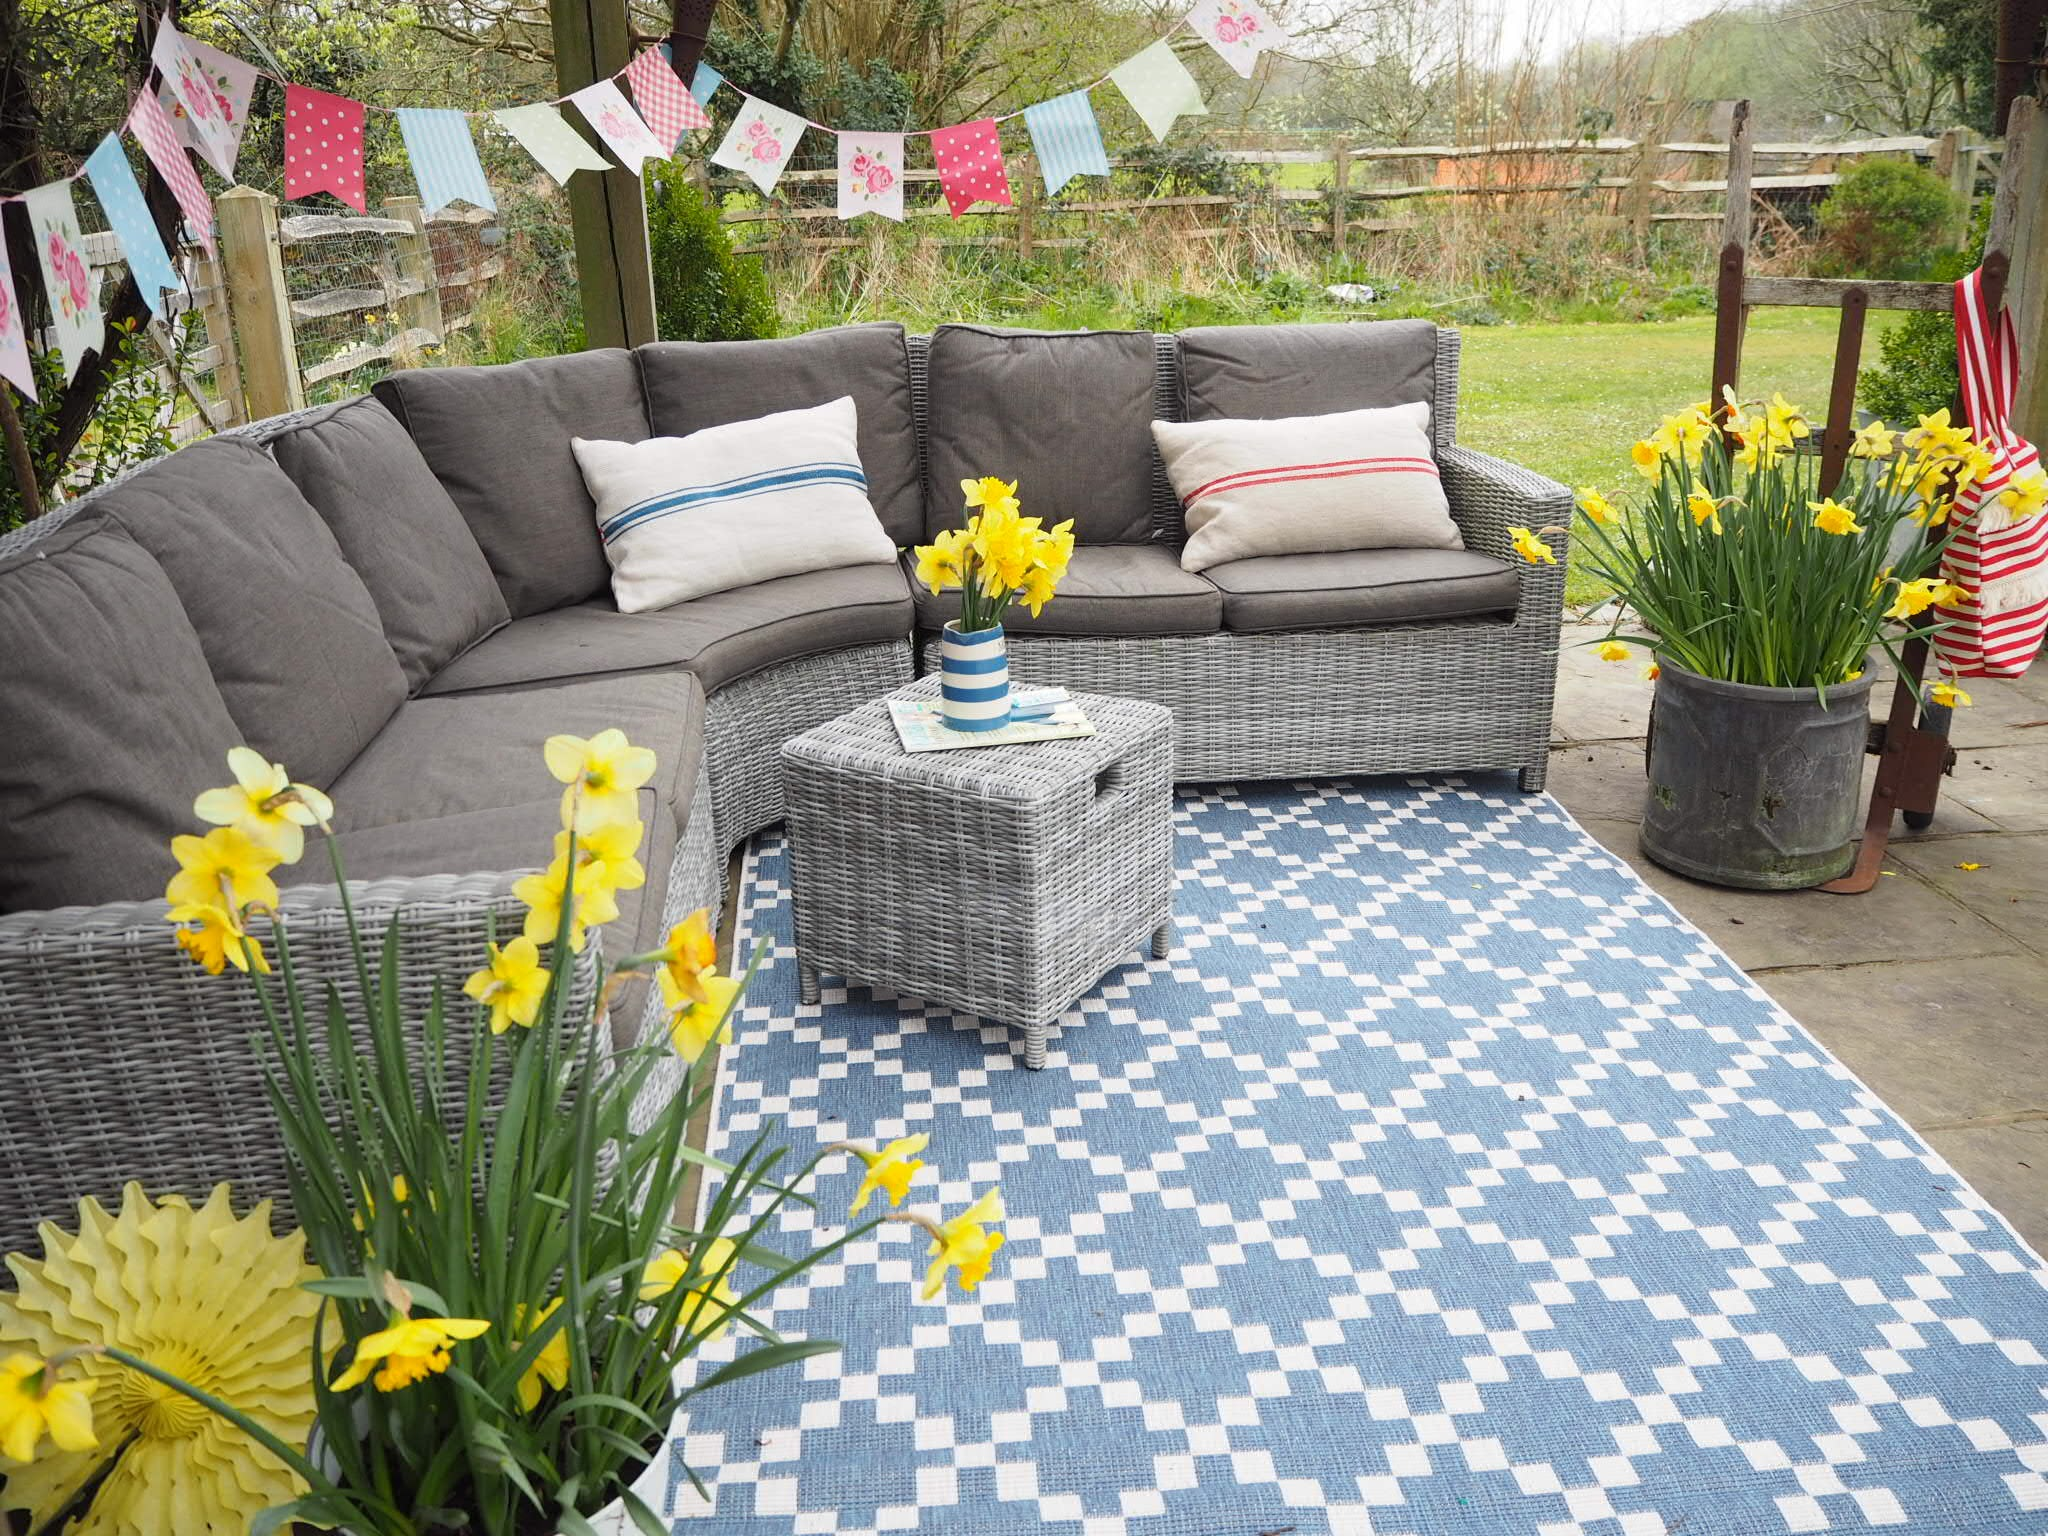 getting stuff done in heels, very network, out door rug, outdoor inspiration, garden inspo, wicker furniture, bunting,